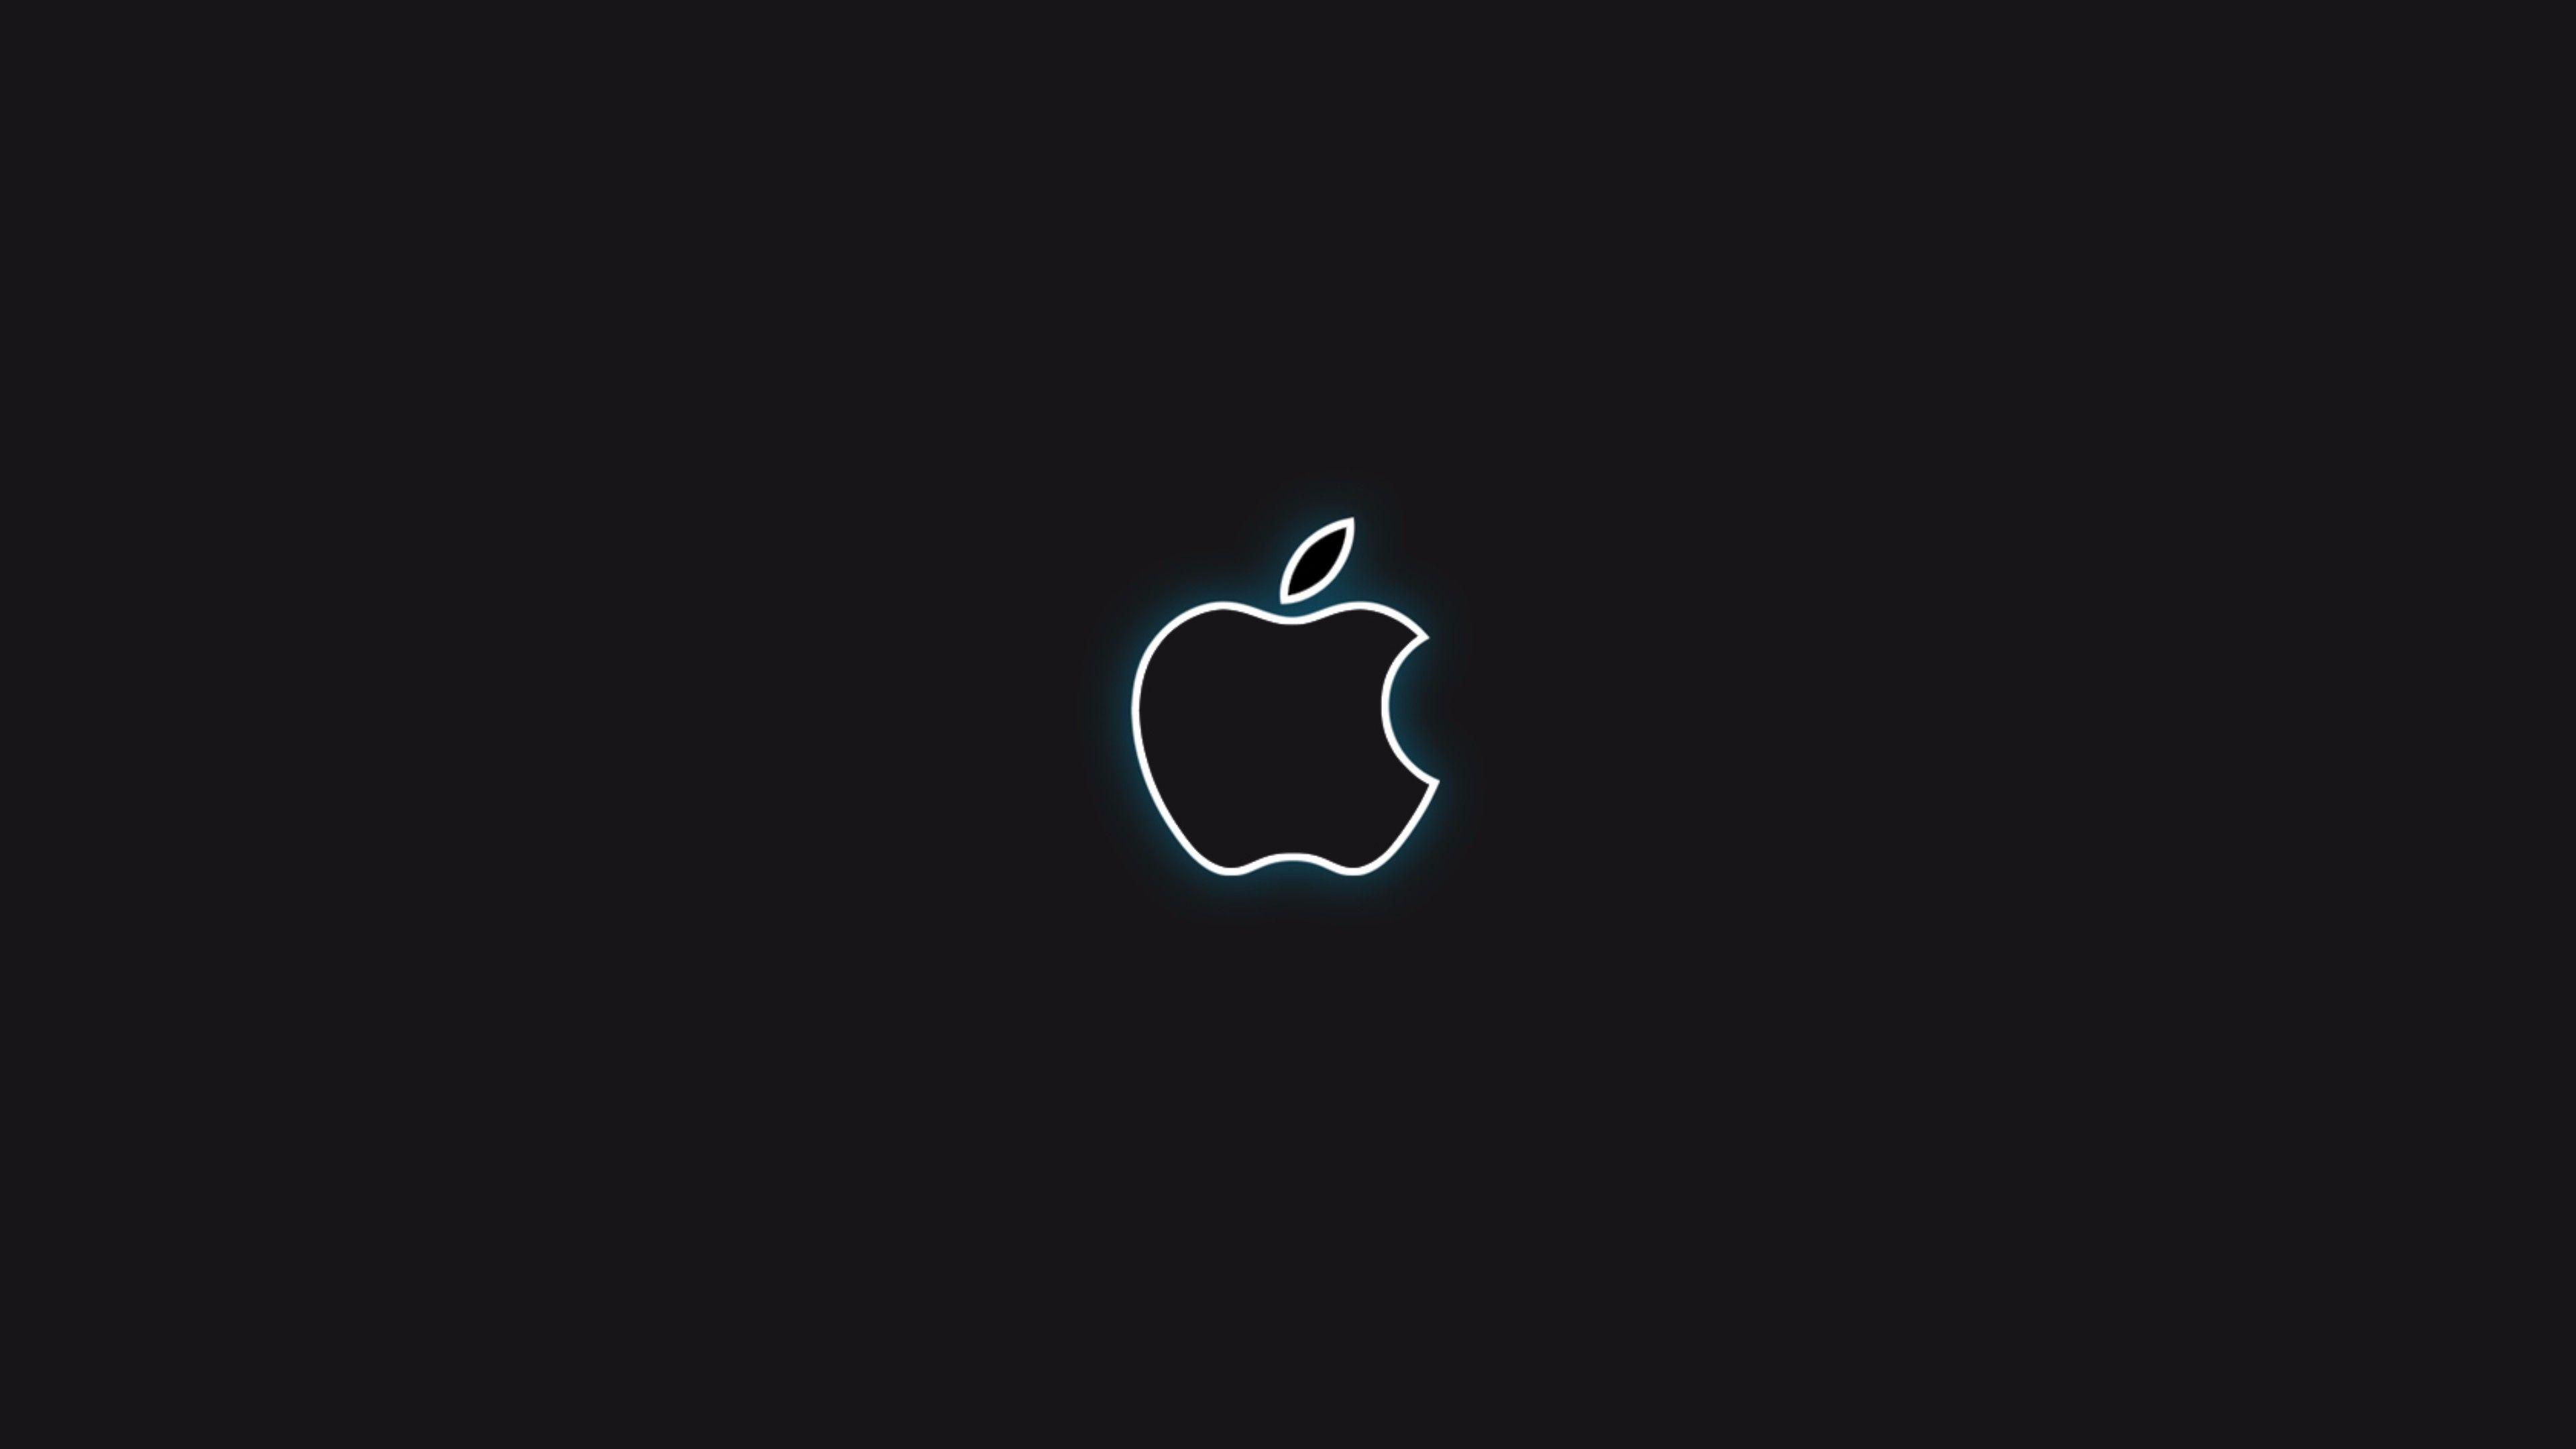 Apple Logo 4k Wallpapers Wallpaper Cave